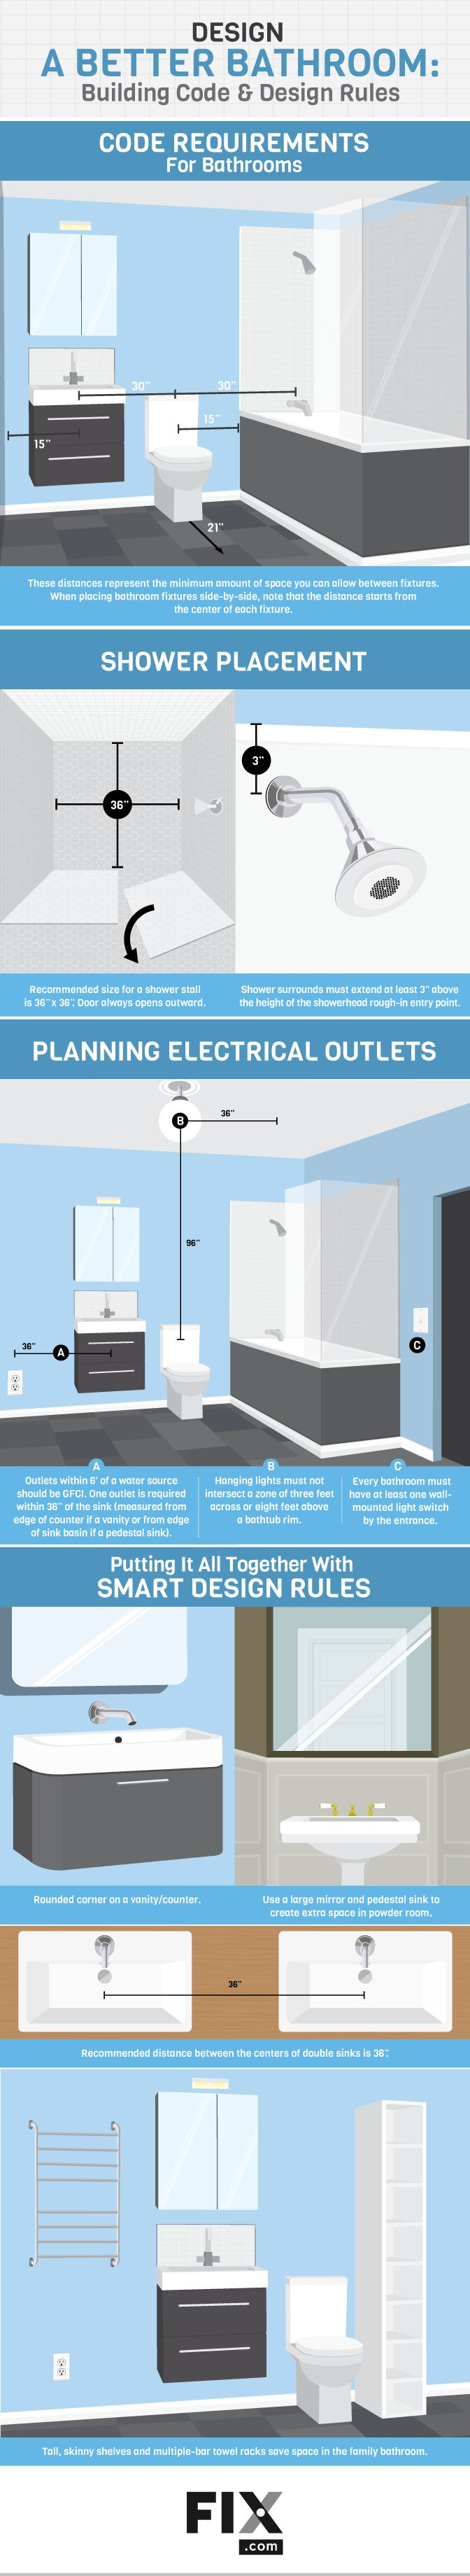 A Better Bathroom: Building Code and Design Rules #infographic #HomeImprovement #Bathroom